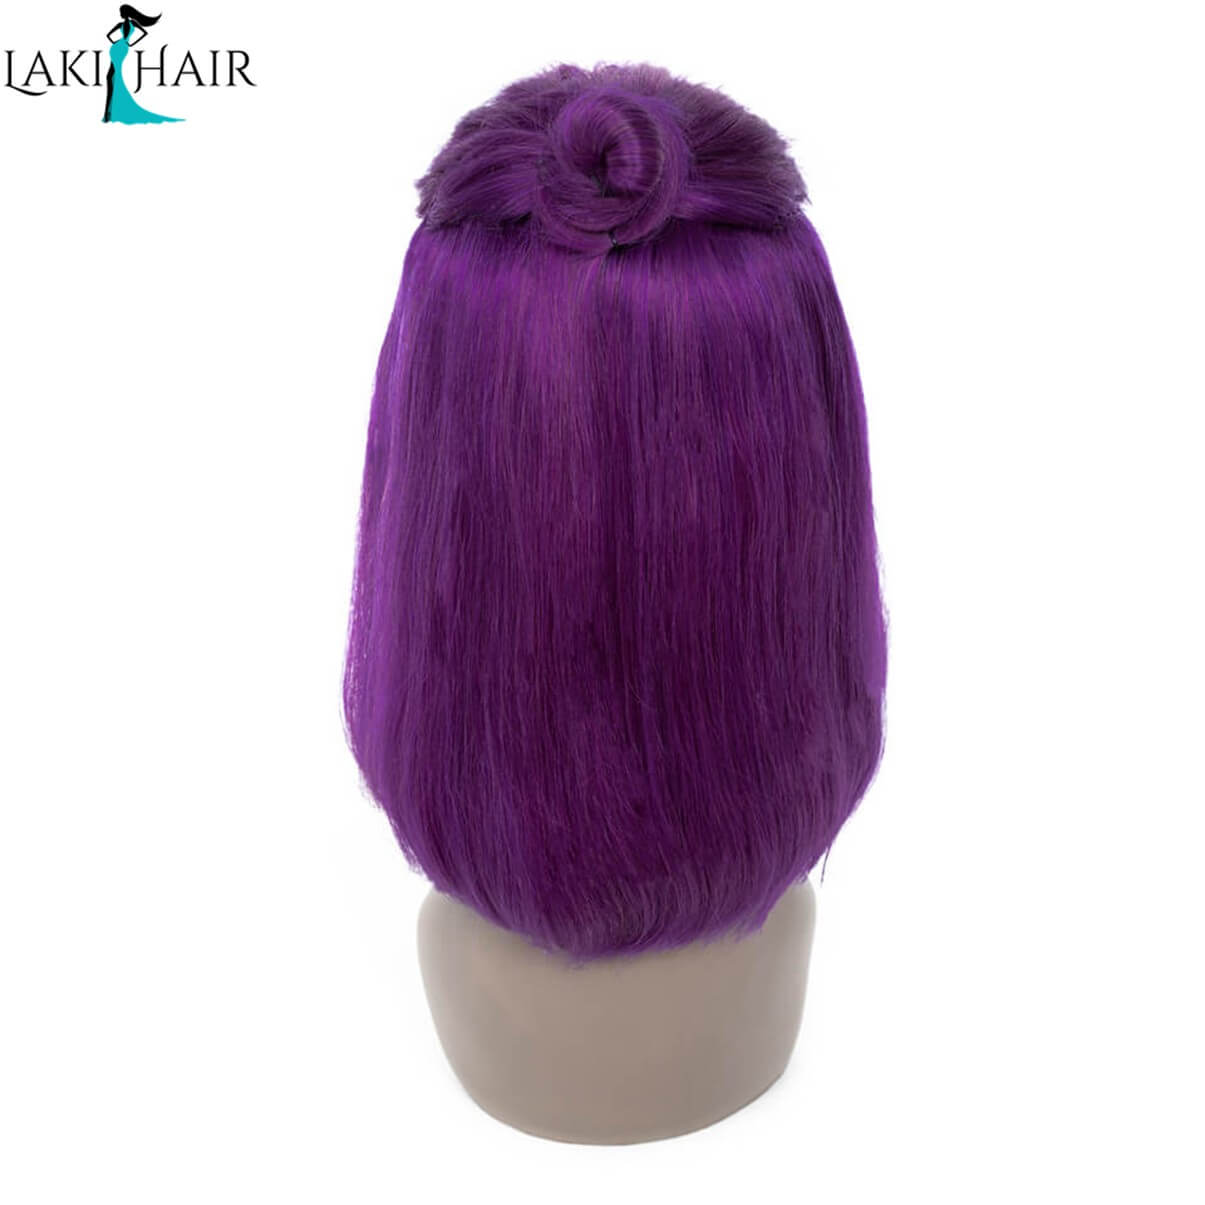 Lakihair Short Bob Straight Lace Wigs Purple Colored Wigs Short Lace Front Human Hair Wigs 100% Virgin Human Hair 180% Density Pre Plucked Hairline